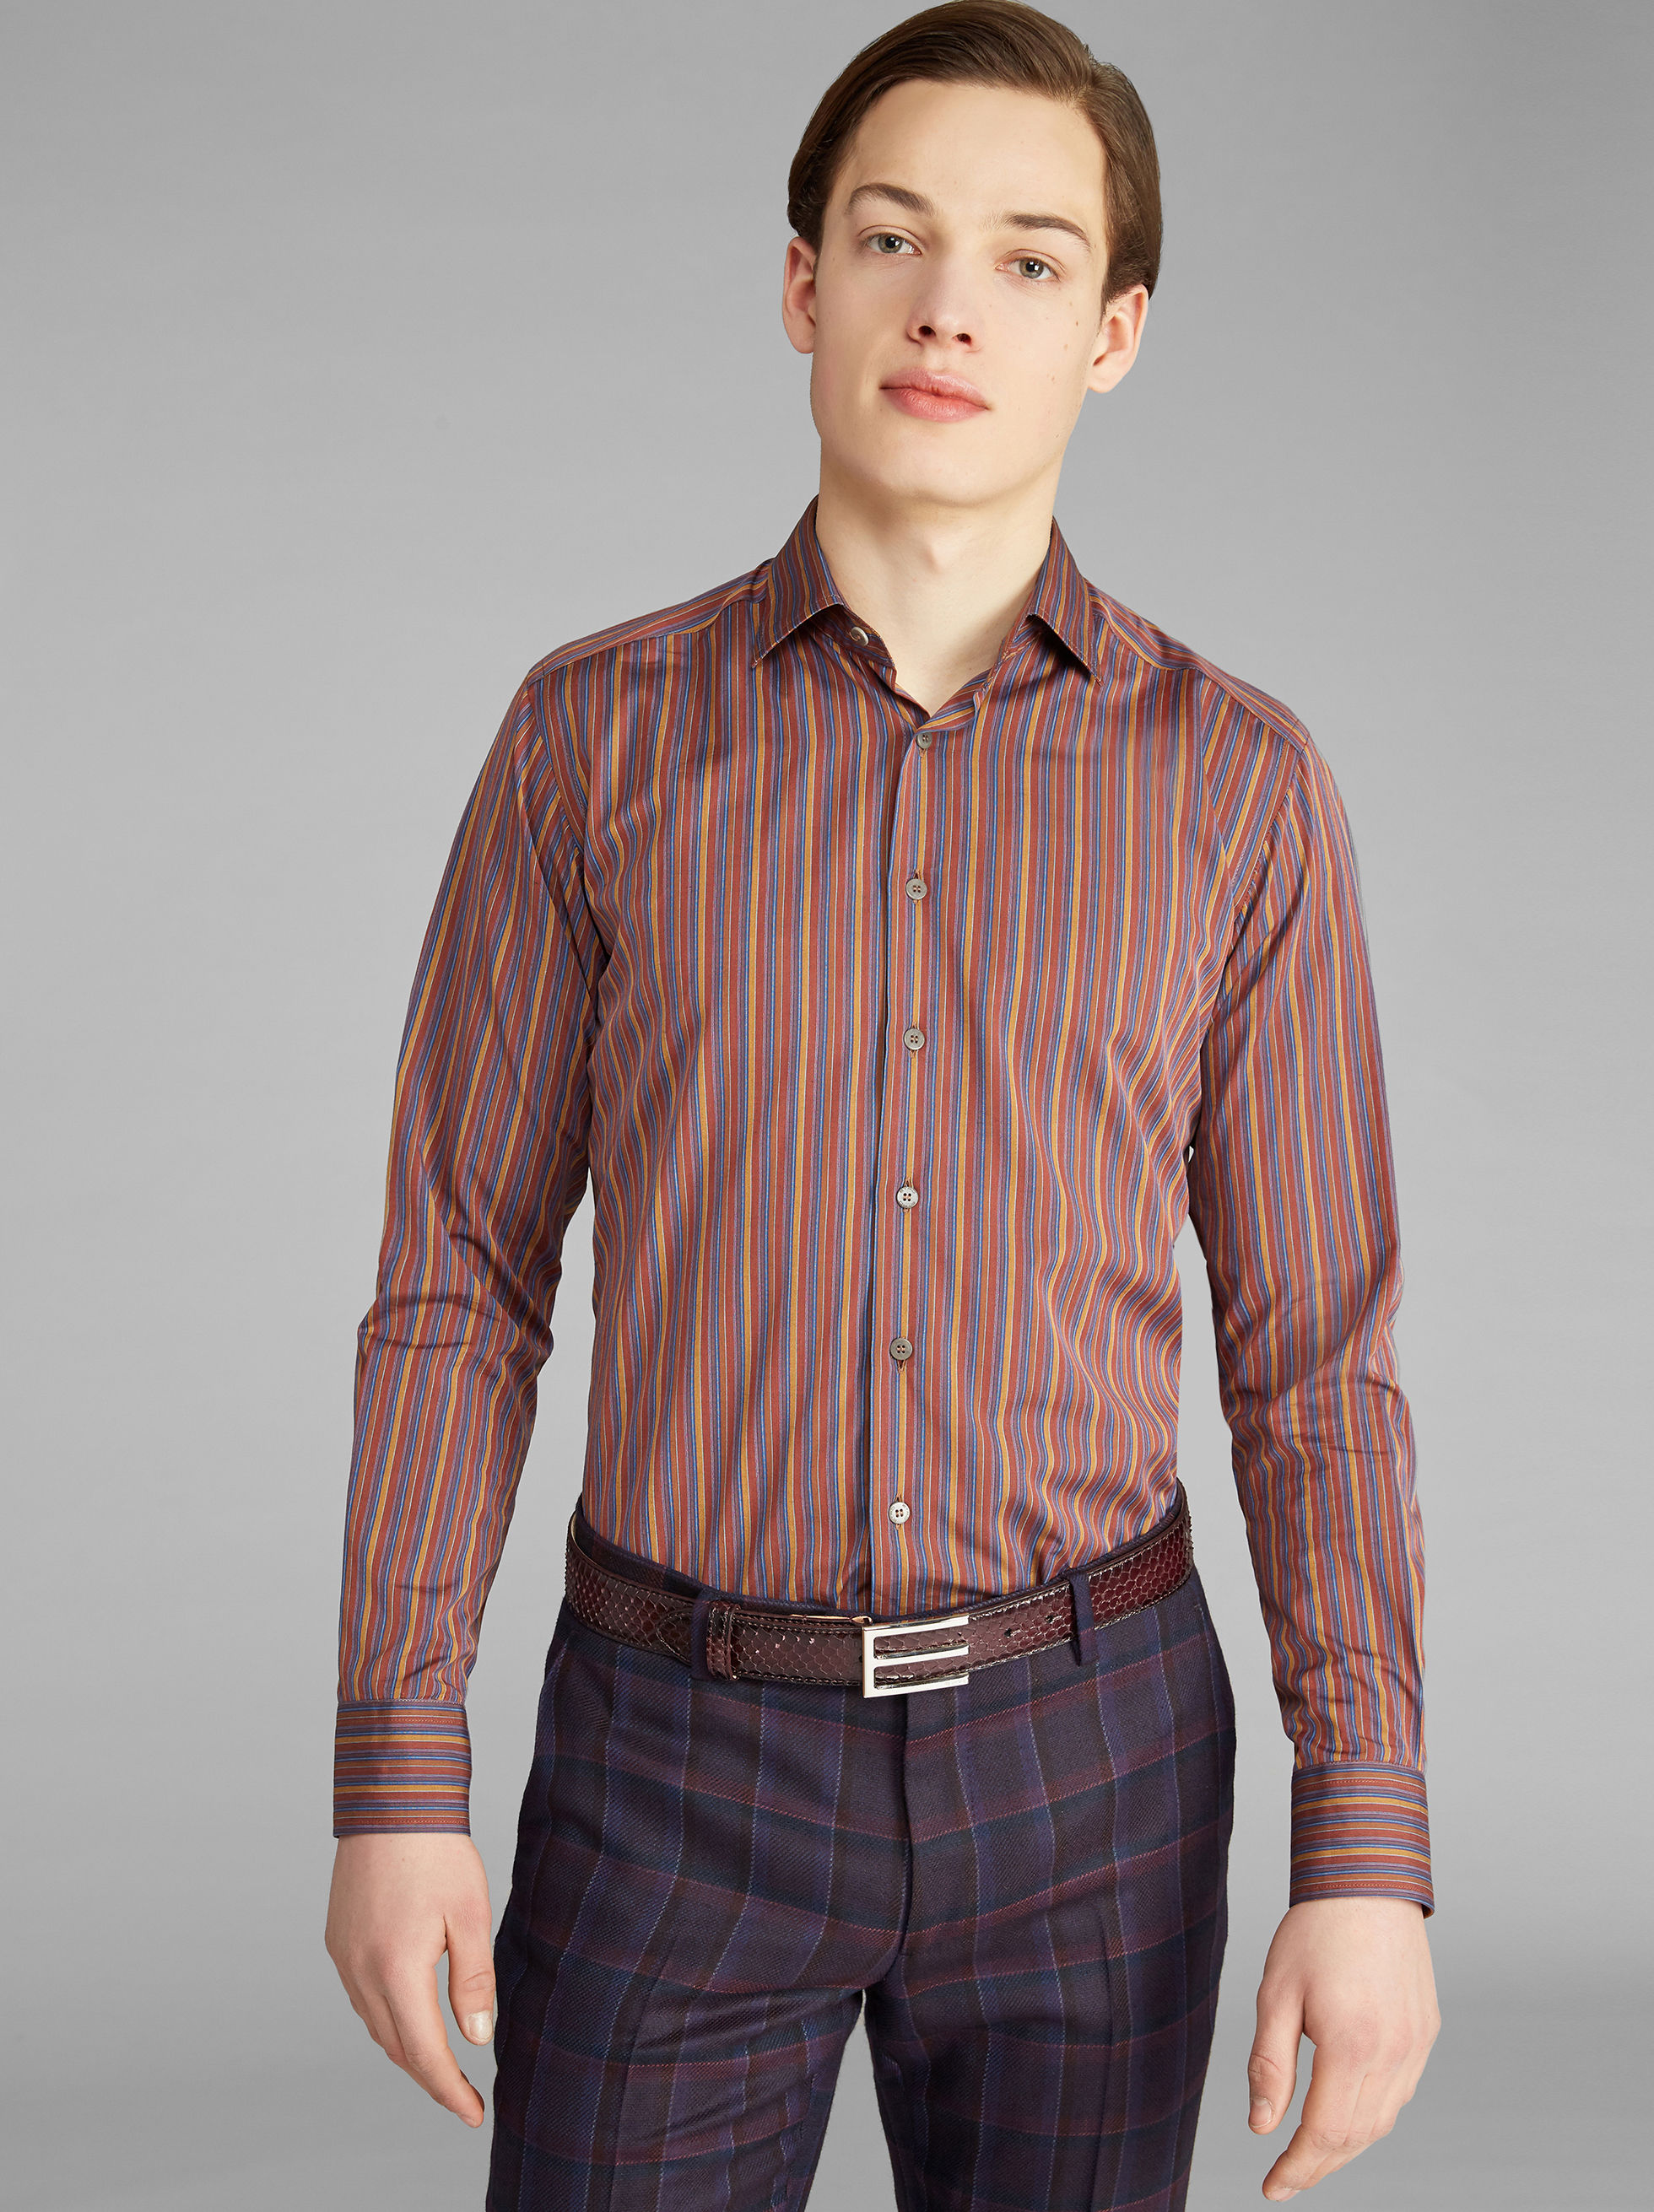 BENETROESSERE STRIPED SHIRT